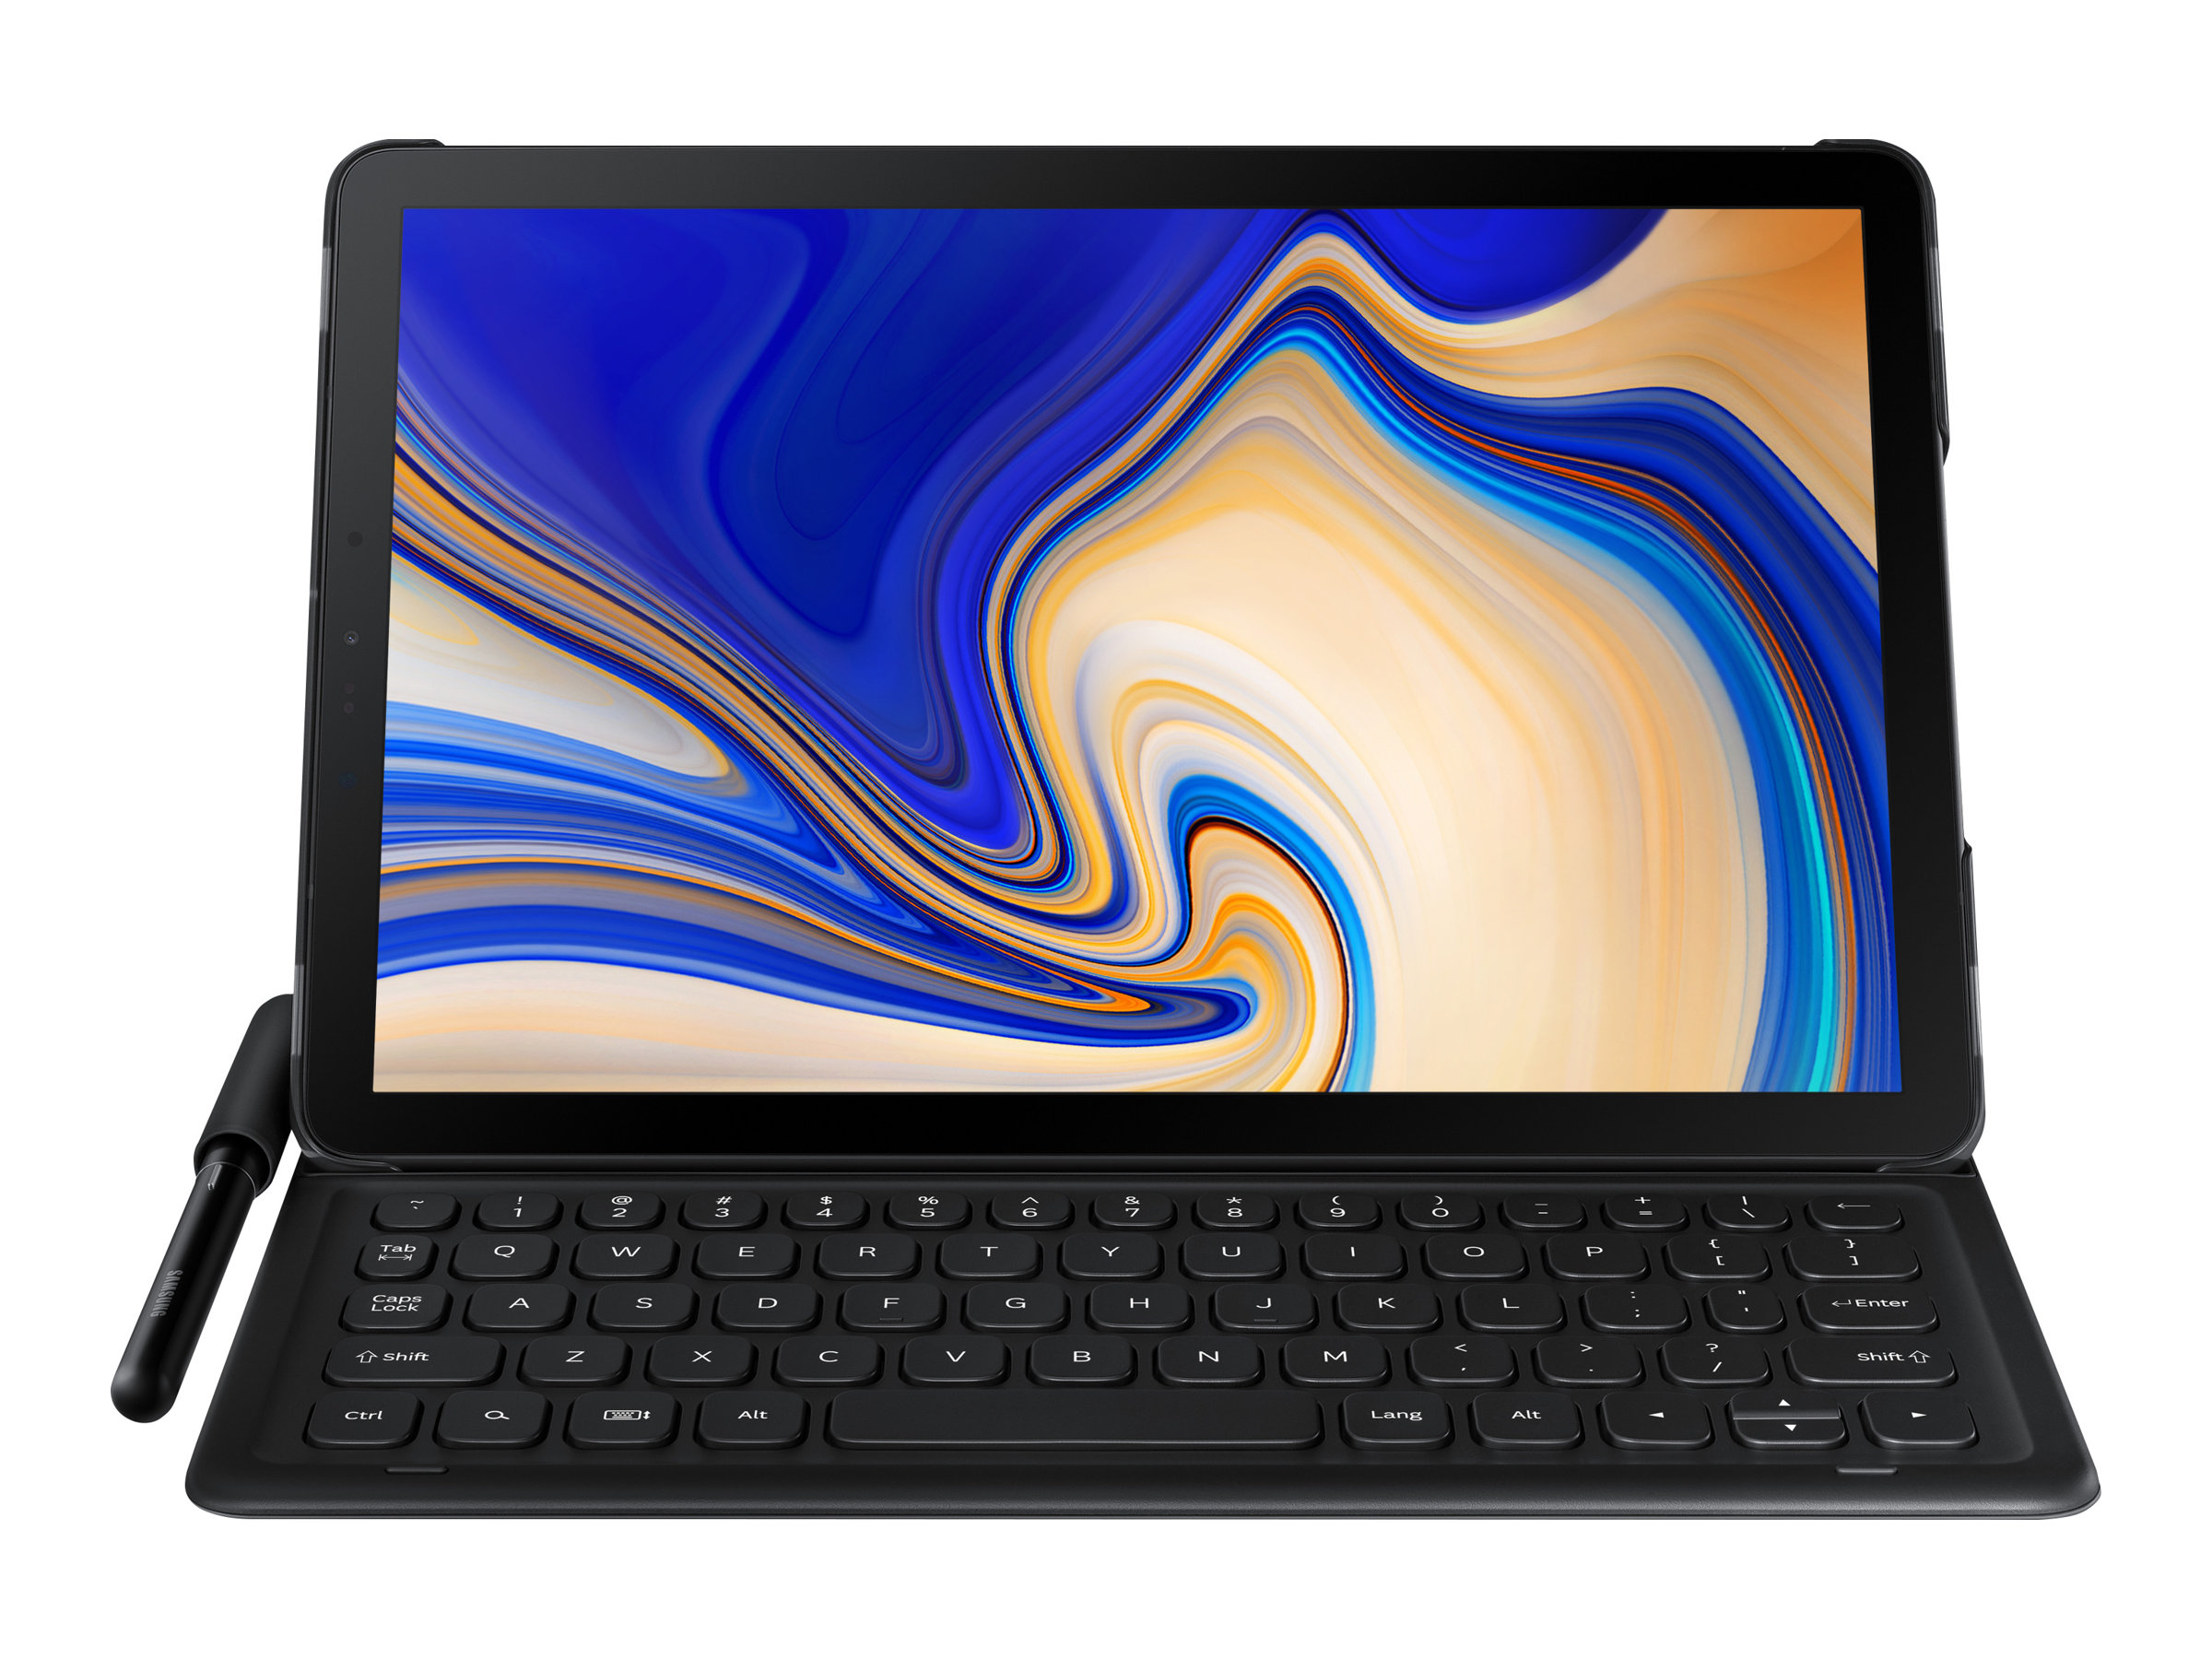 Microsoft Surface Pro Signature Keyboard Tablet PC keyboard Compatible with (tablet PC brand): Microsoft Surface Pro